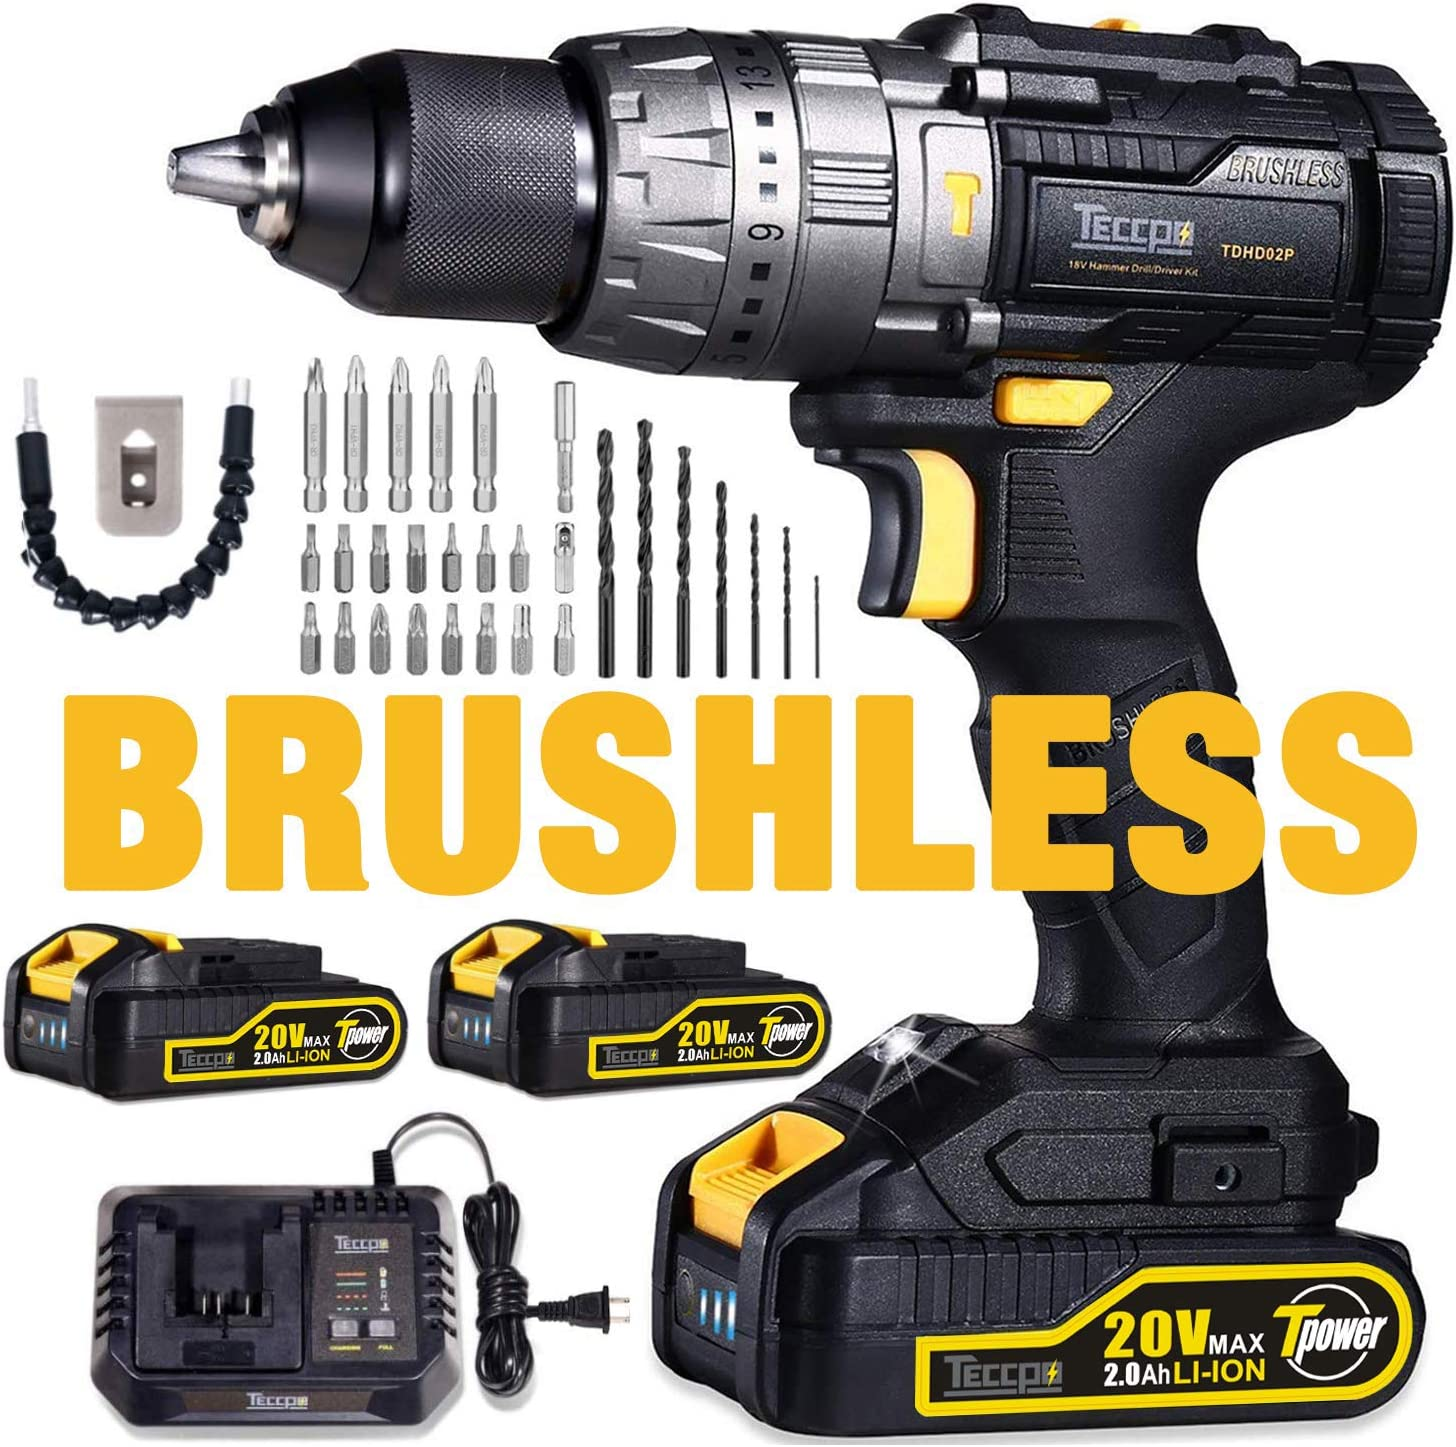 Brushless Drill, TECCPO 20V Cordless Hammer Drill 530In-lbs, 2 Batteries 2.0Ah, 30min Fast Charger, 21 3 Torque Setting, 29pcs Free Accessories, 2-Speeds, 1 2 Metal Chuck